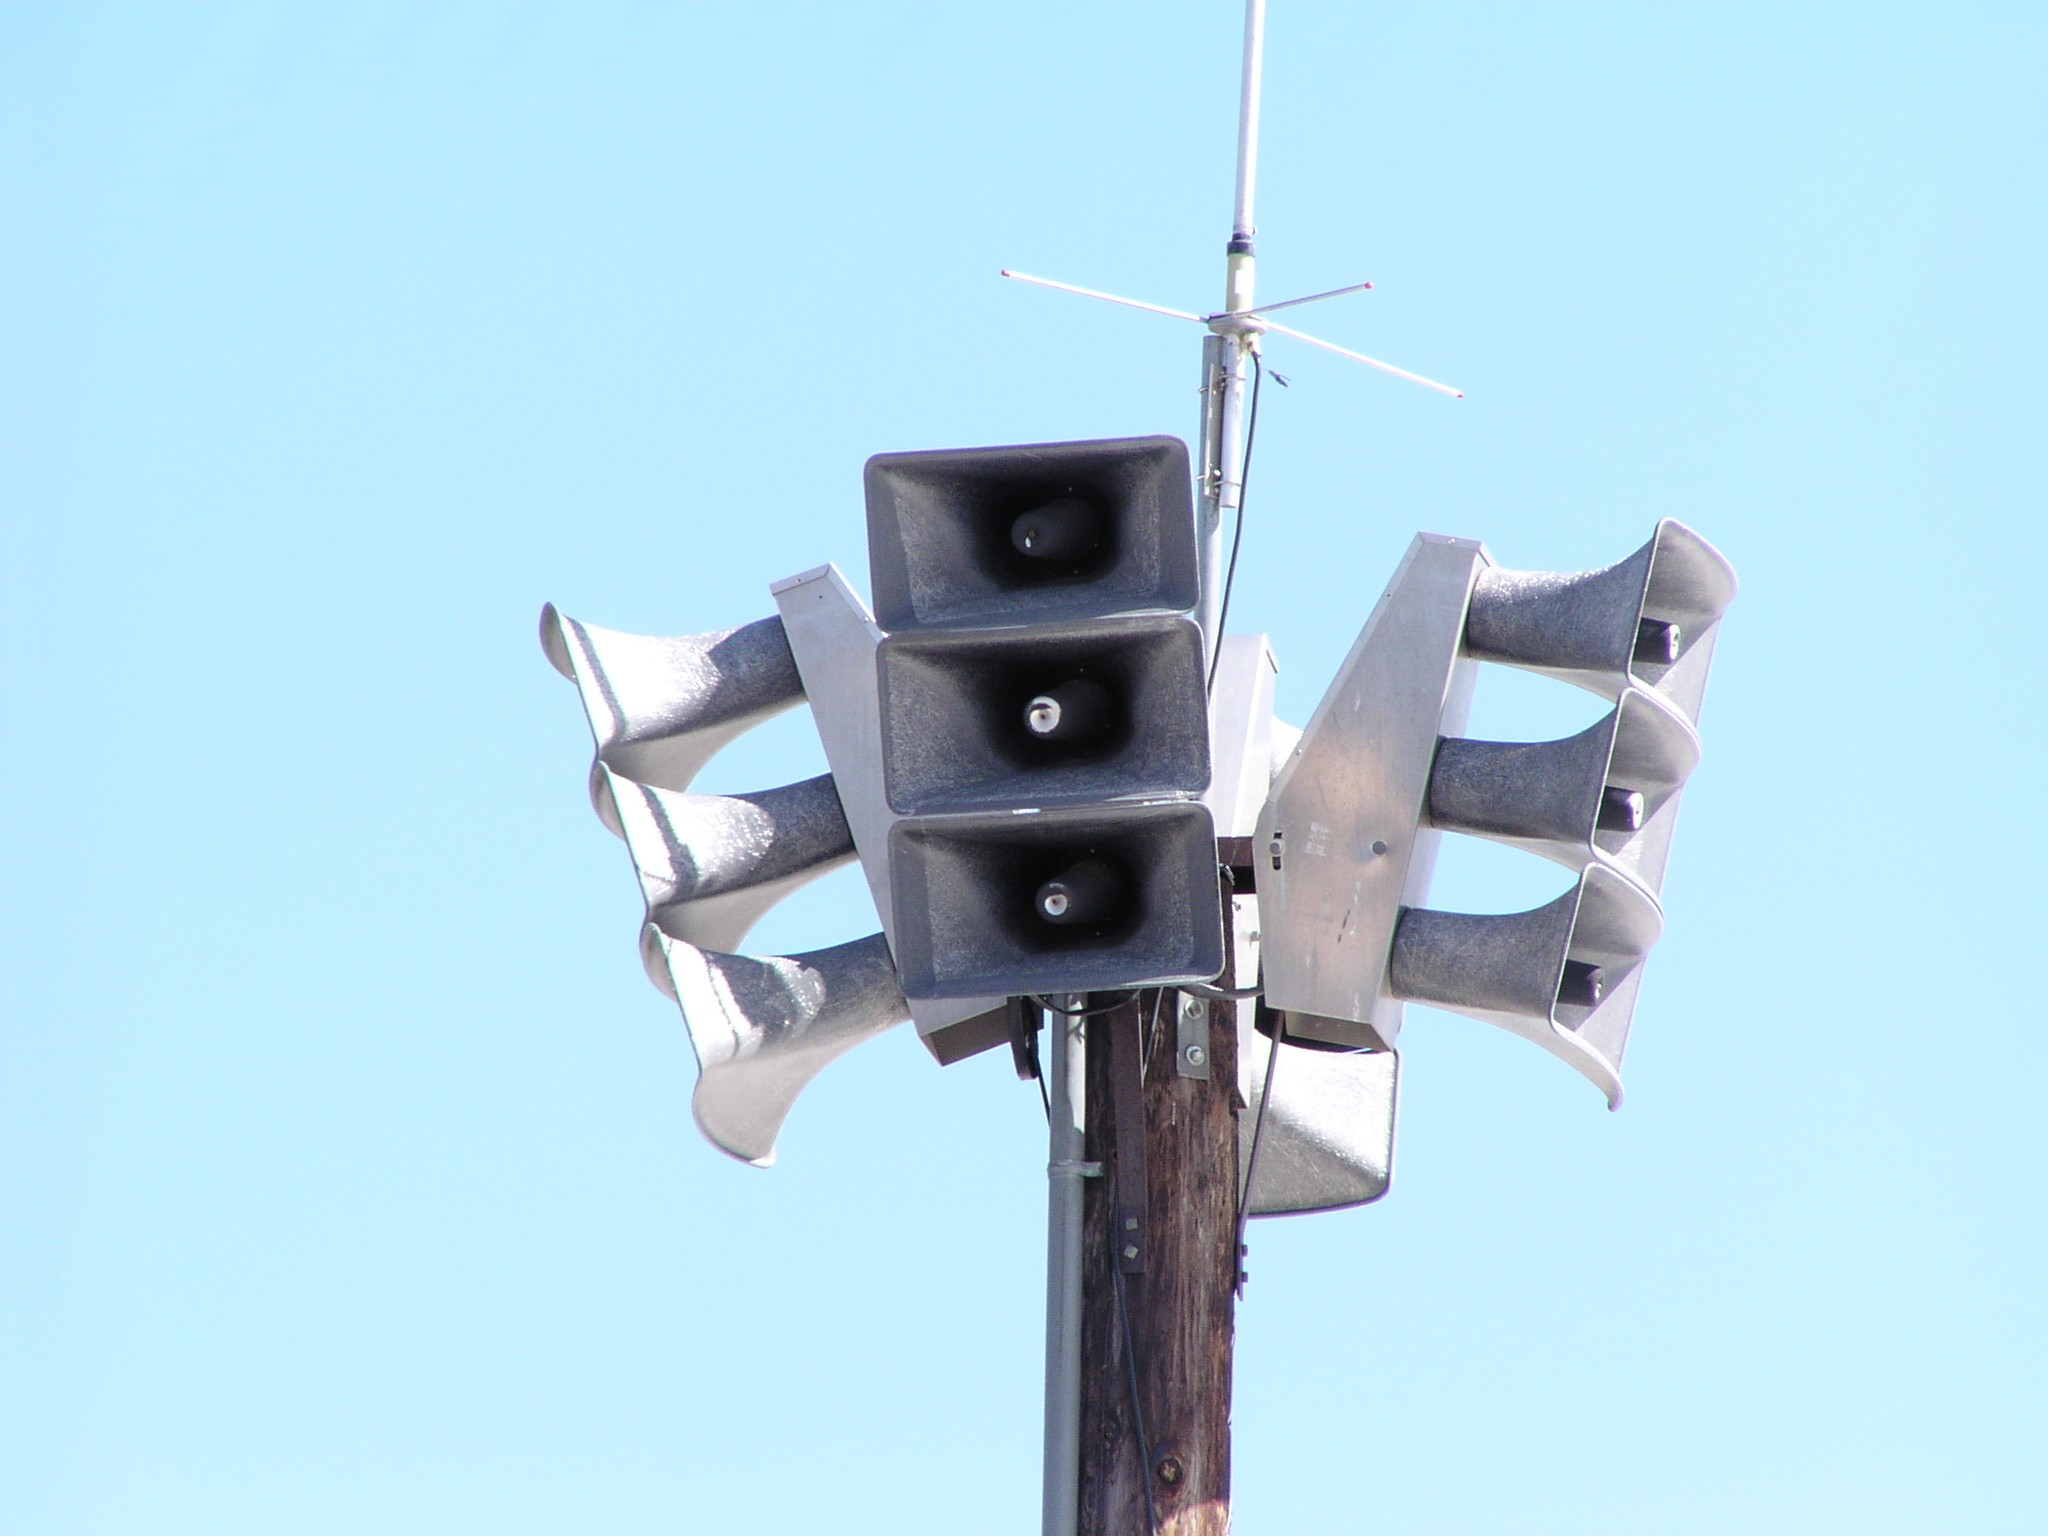 Picture of a warning siren